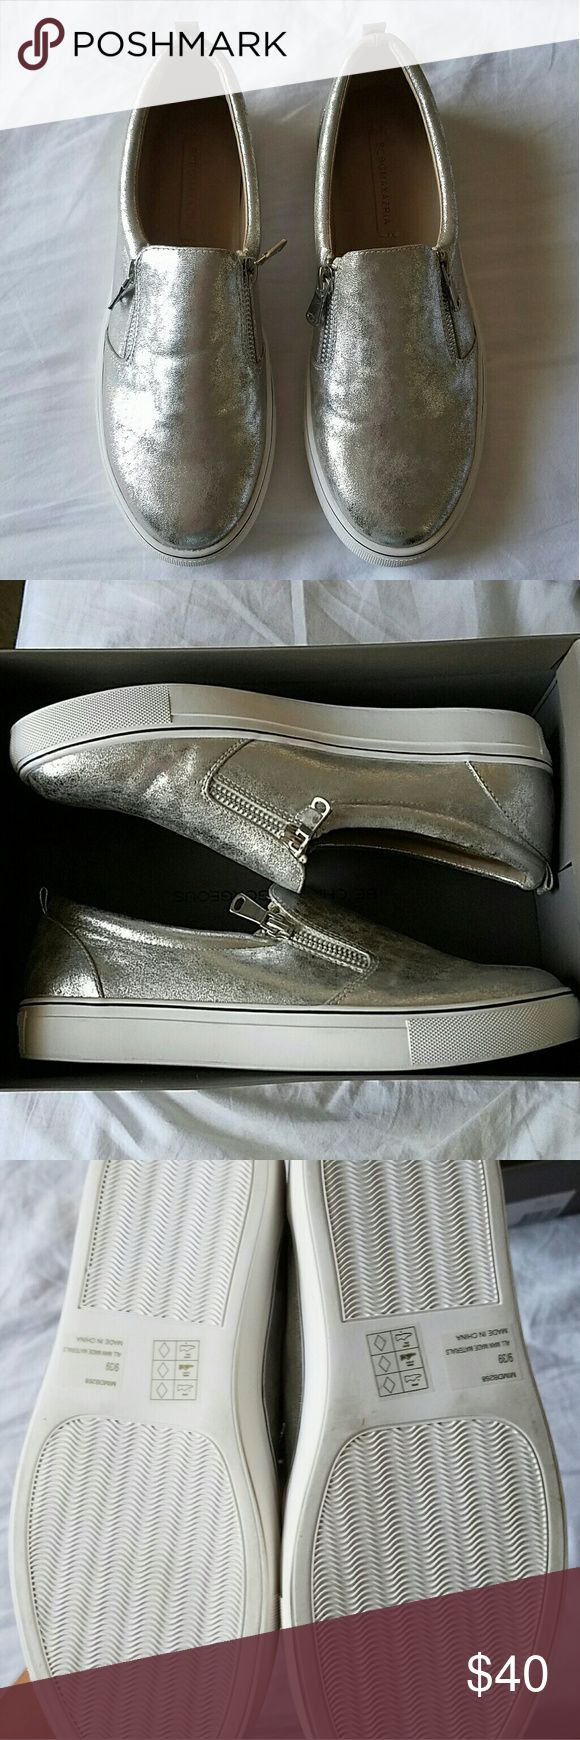 BCBGMAXAZRIA Fashion Sneakers Brand new never worn, and in the box. The right shoe has a little discoloration on the sole due to being the display. Perfect other than that! The outside zipper slides to make it easy to put on. BCBGMaxAzria Shoes Sneakers